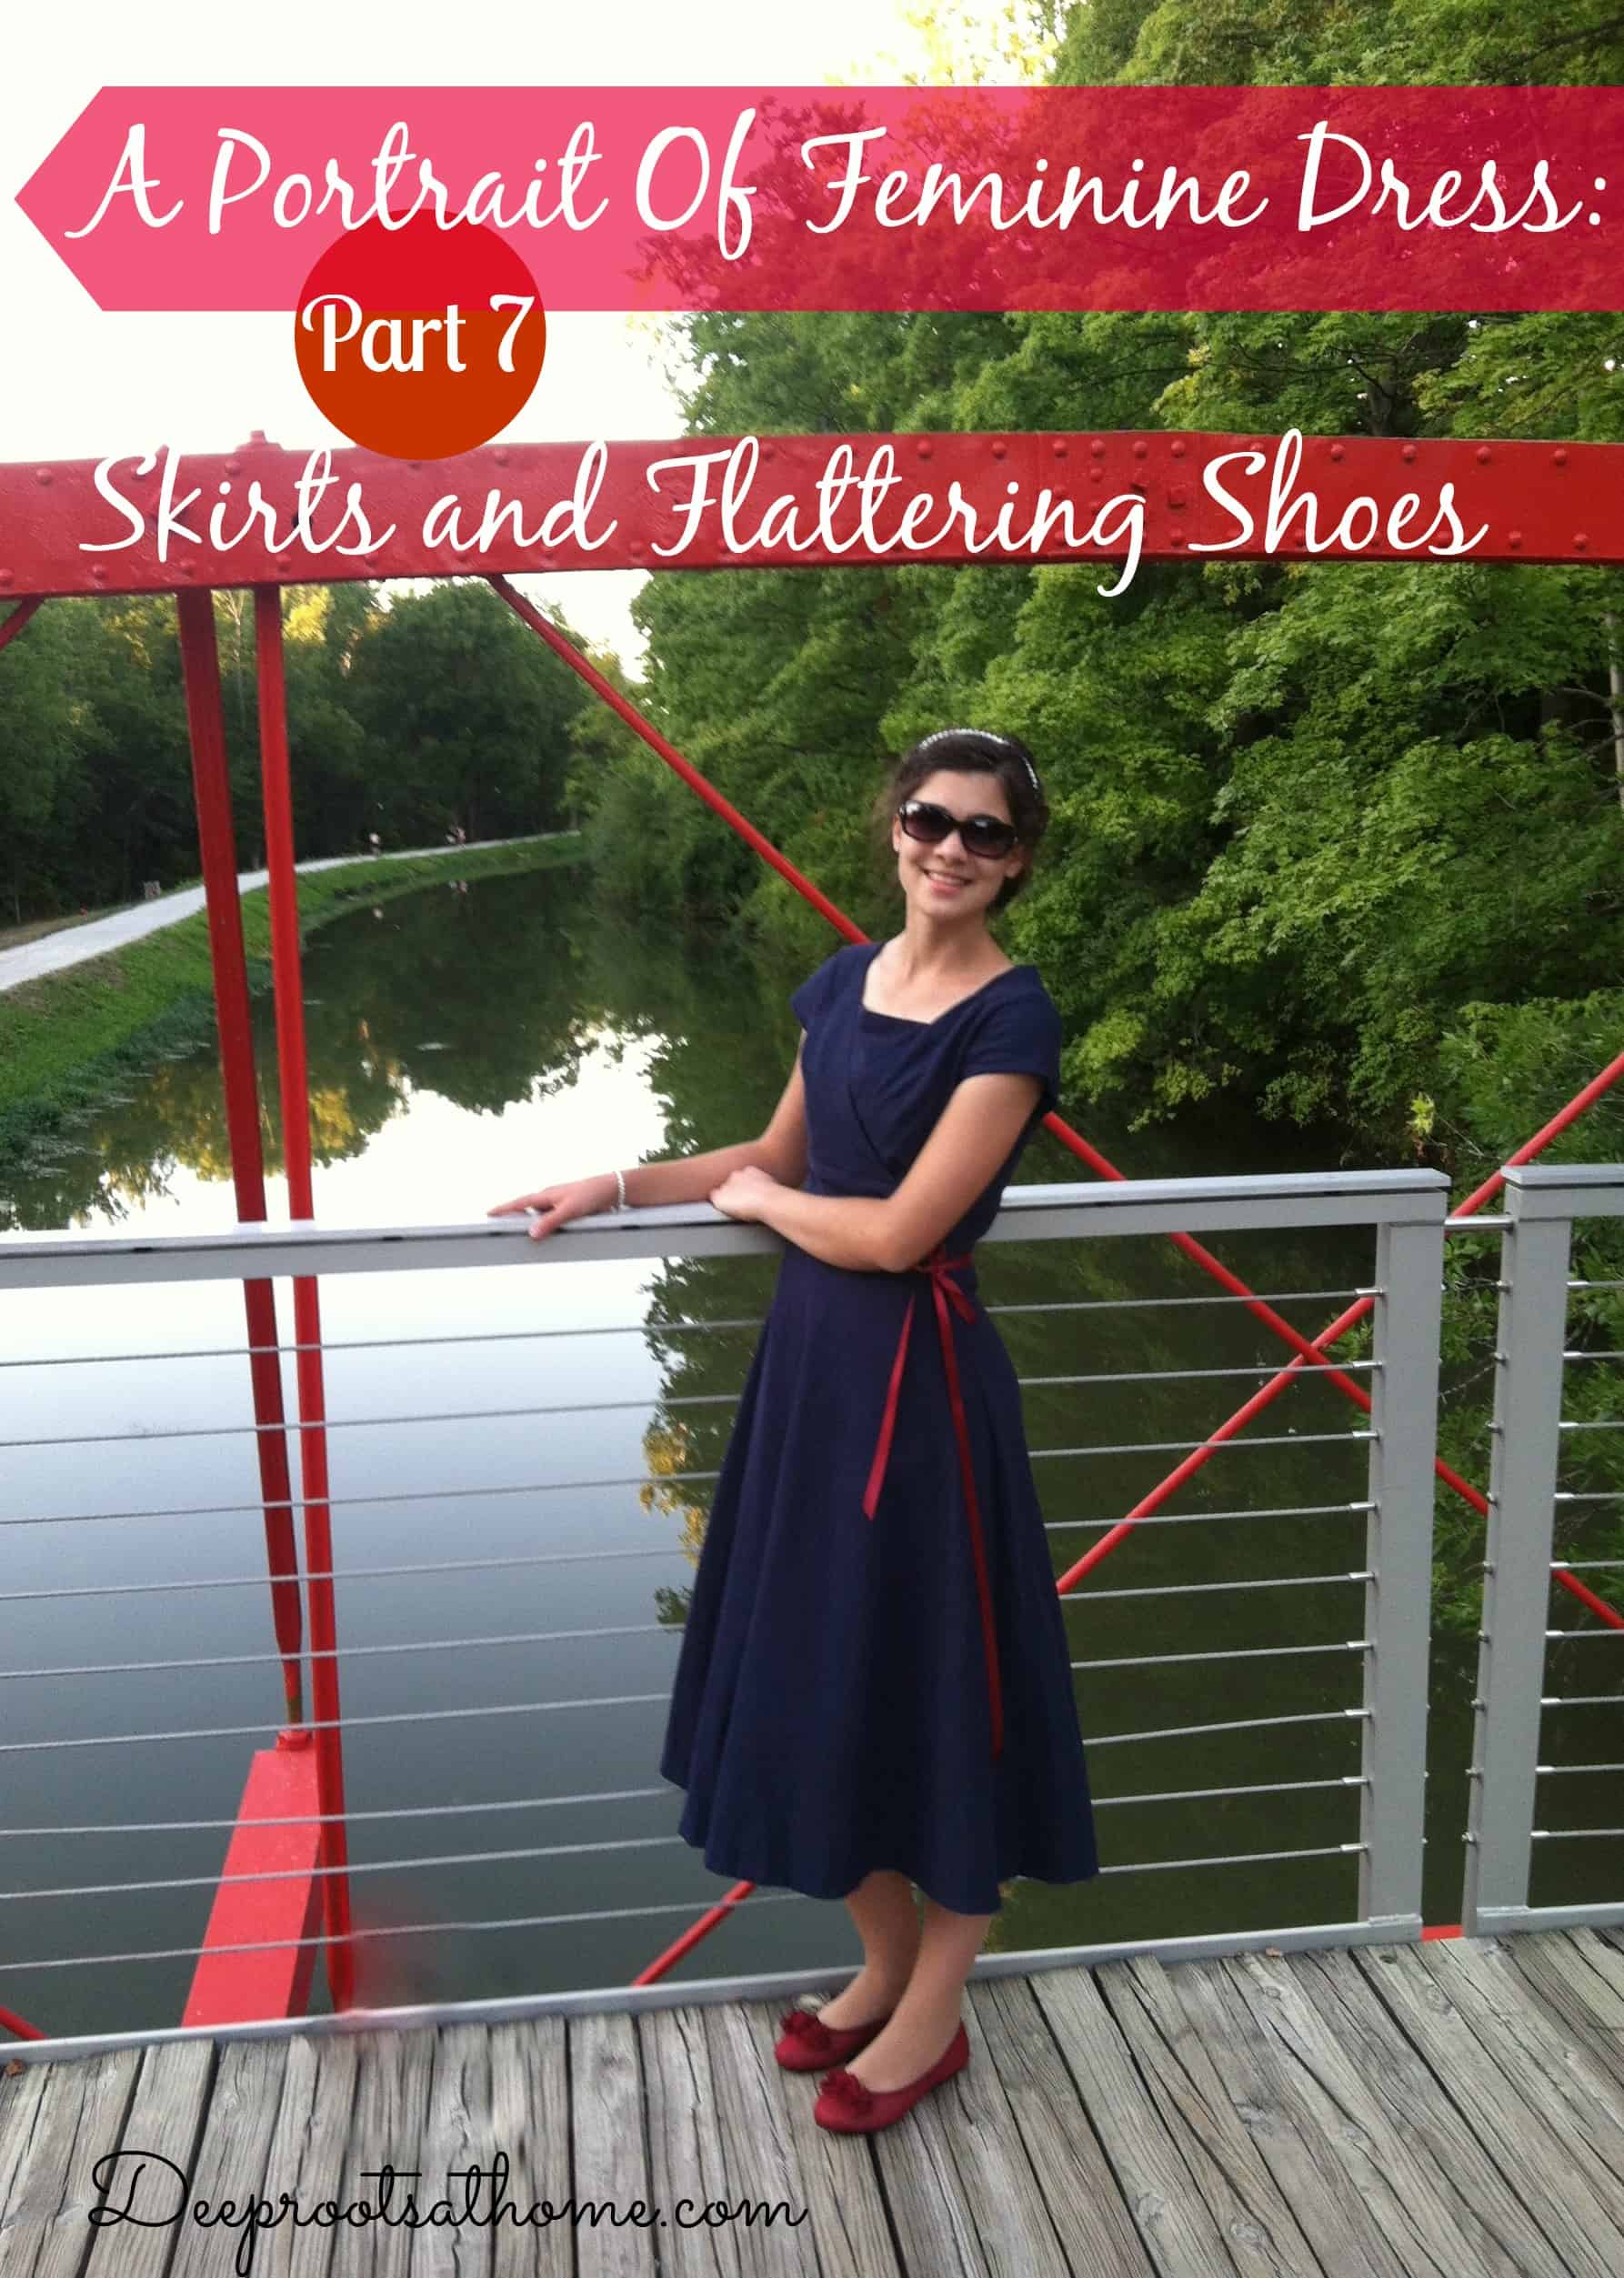 Finding Flattering Shoes & Footwear To Wear With Skirts & Dresses. strappy shoes, feminine, modest, with skirts, tights in the winter, leggings, flattering shoes for skirts